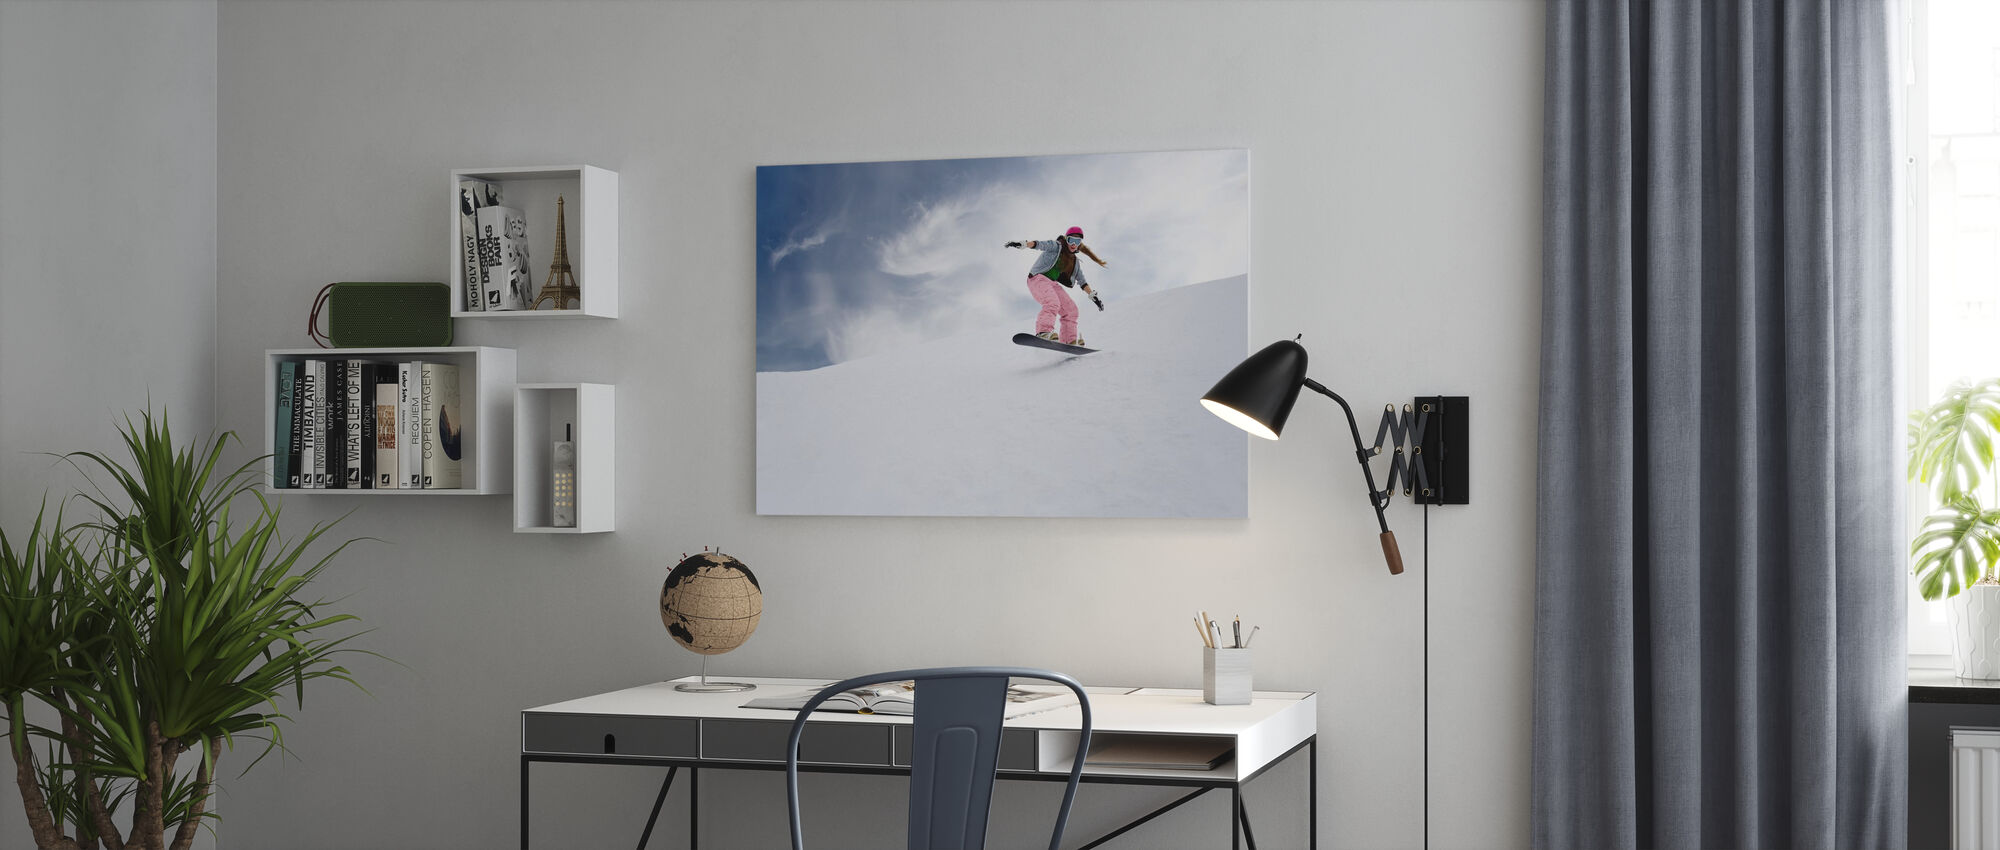 Snowboard Rider - Canvas print - Office